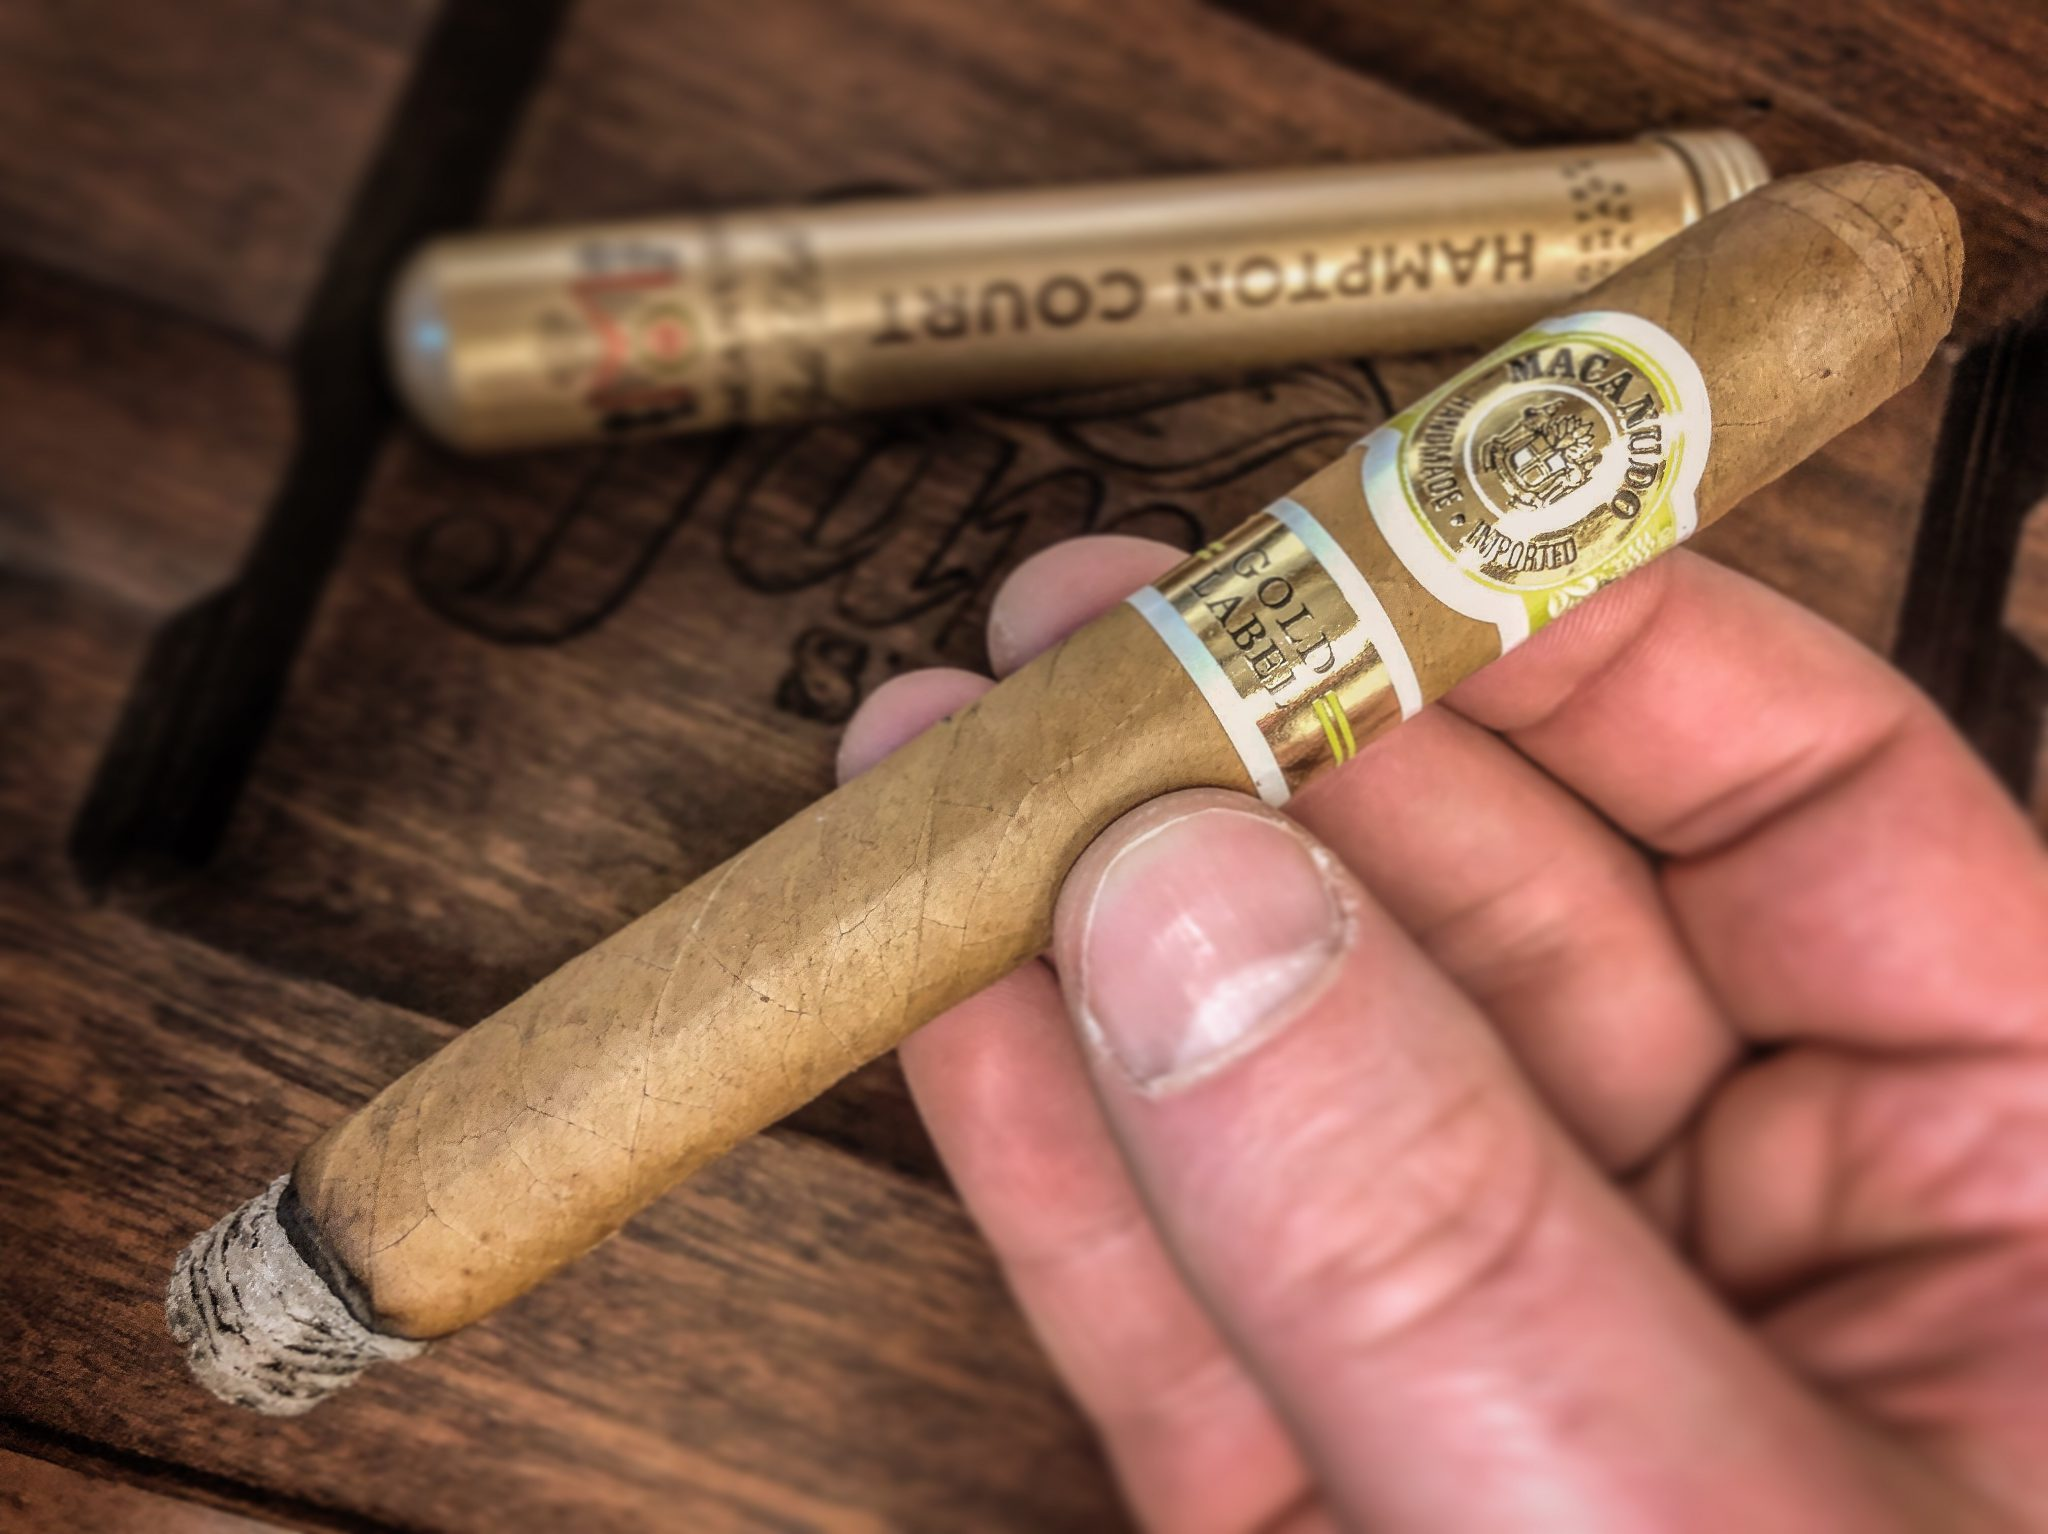 Macanudo cigars guide Macanudo Gold Label Hampton Court cigar review by Jared Gulick